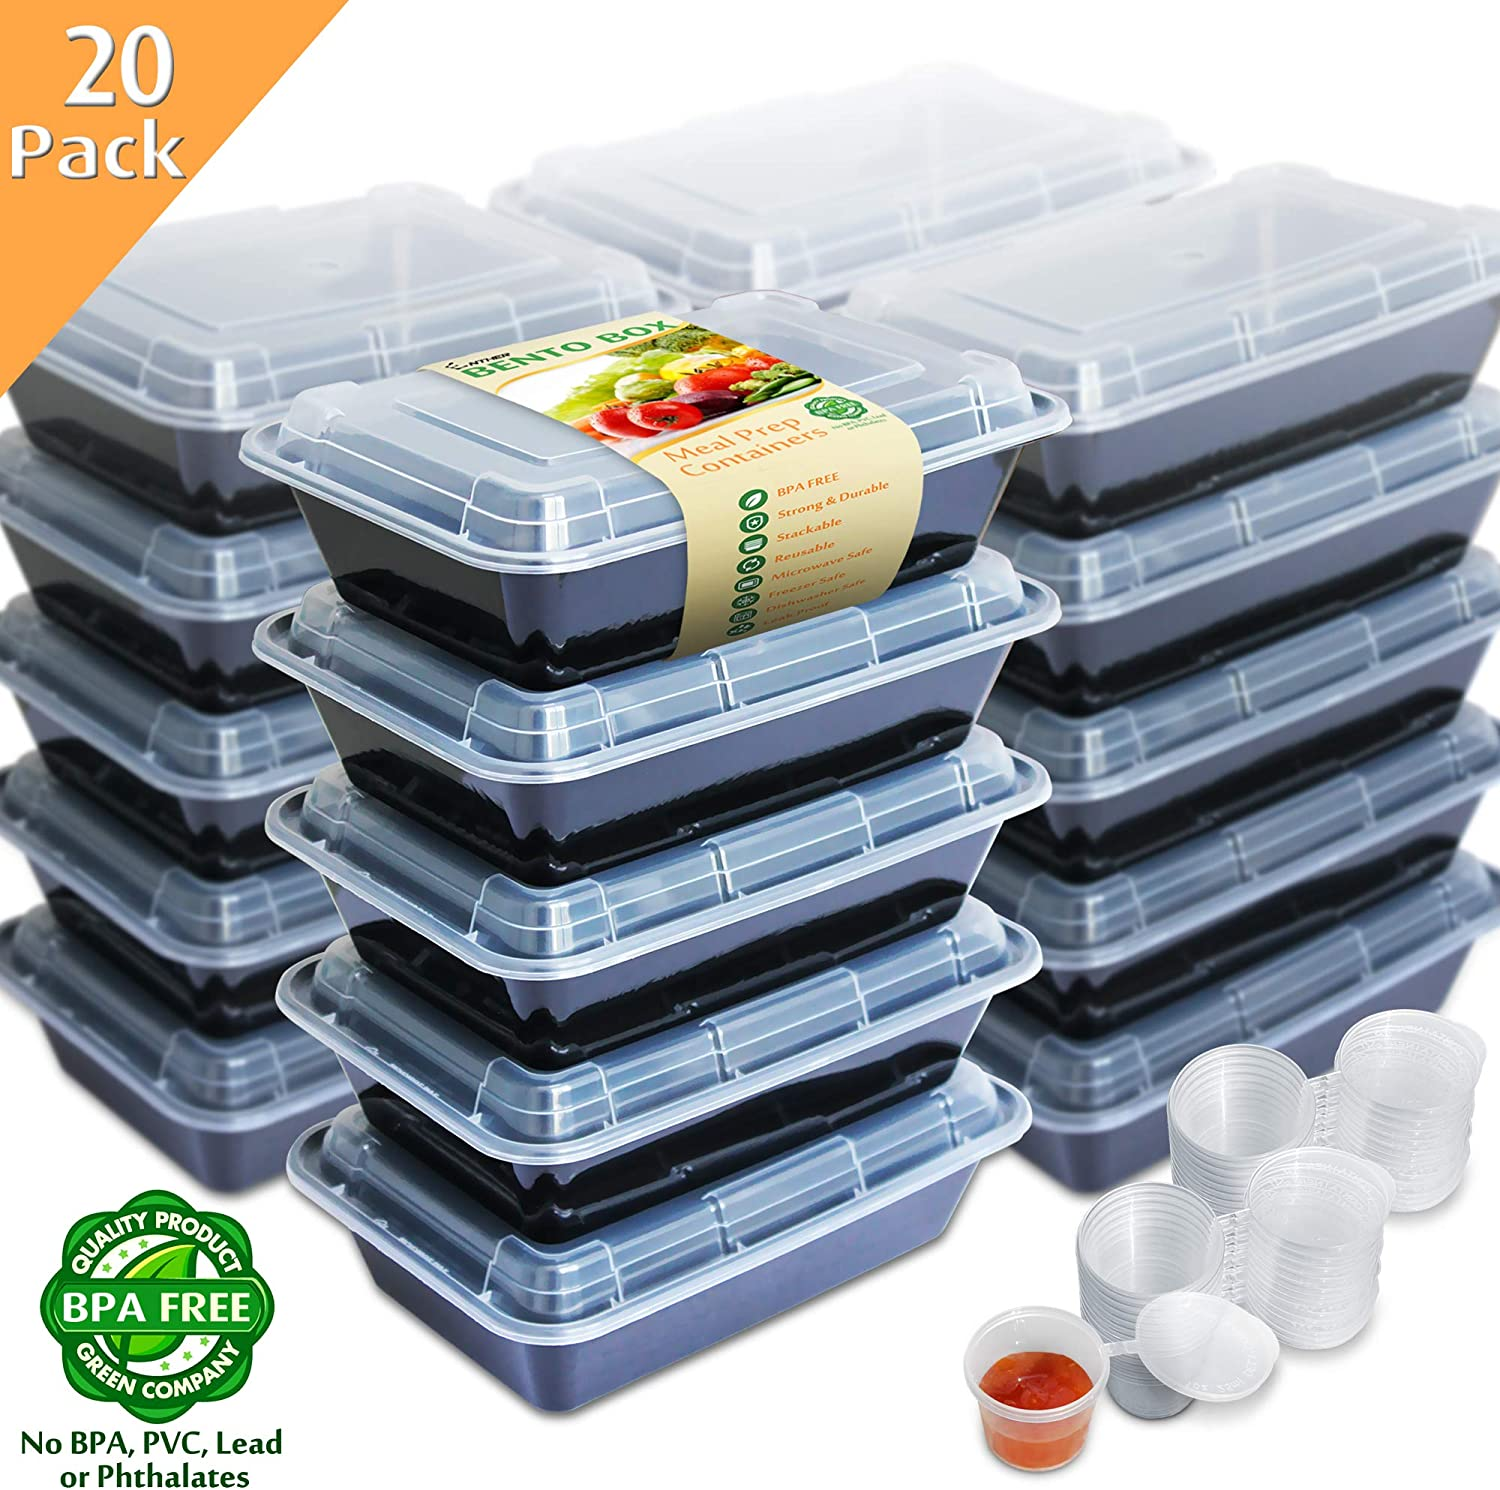 Enther [20 Pack] Single 1 Compartment Meal Prep Containers with Lids, Food Storage Bento Box with Portion Cups, BPA Free, Reusable Lunch Box, Microwave/Dishwasher/Freezer Safe, Portion Control, 28oz